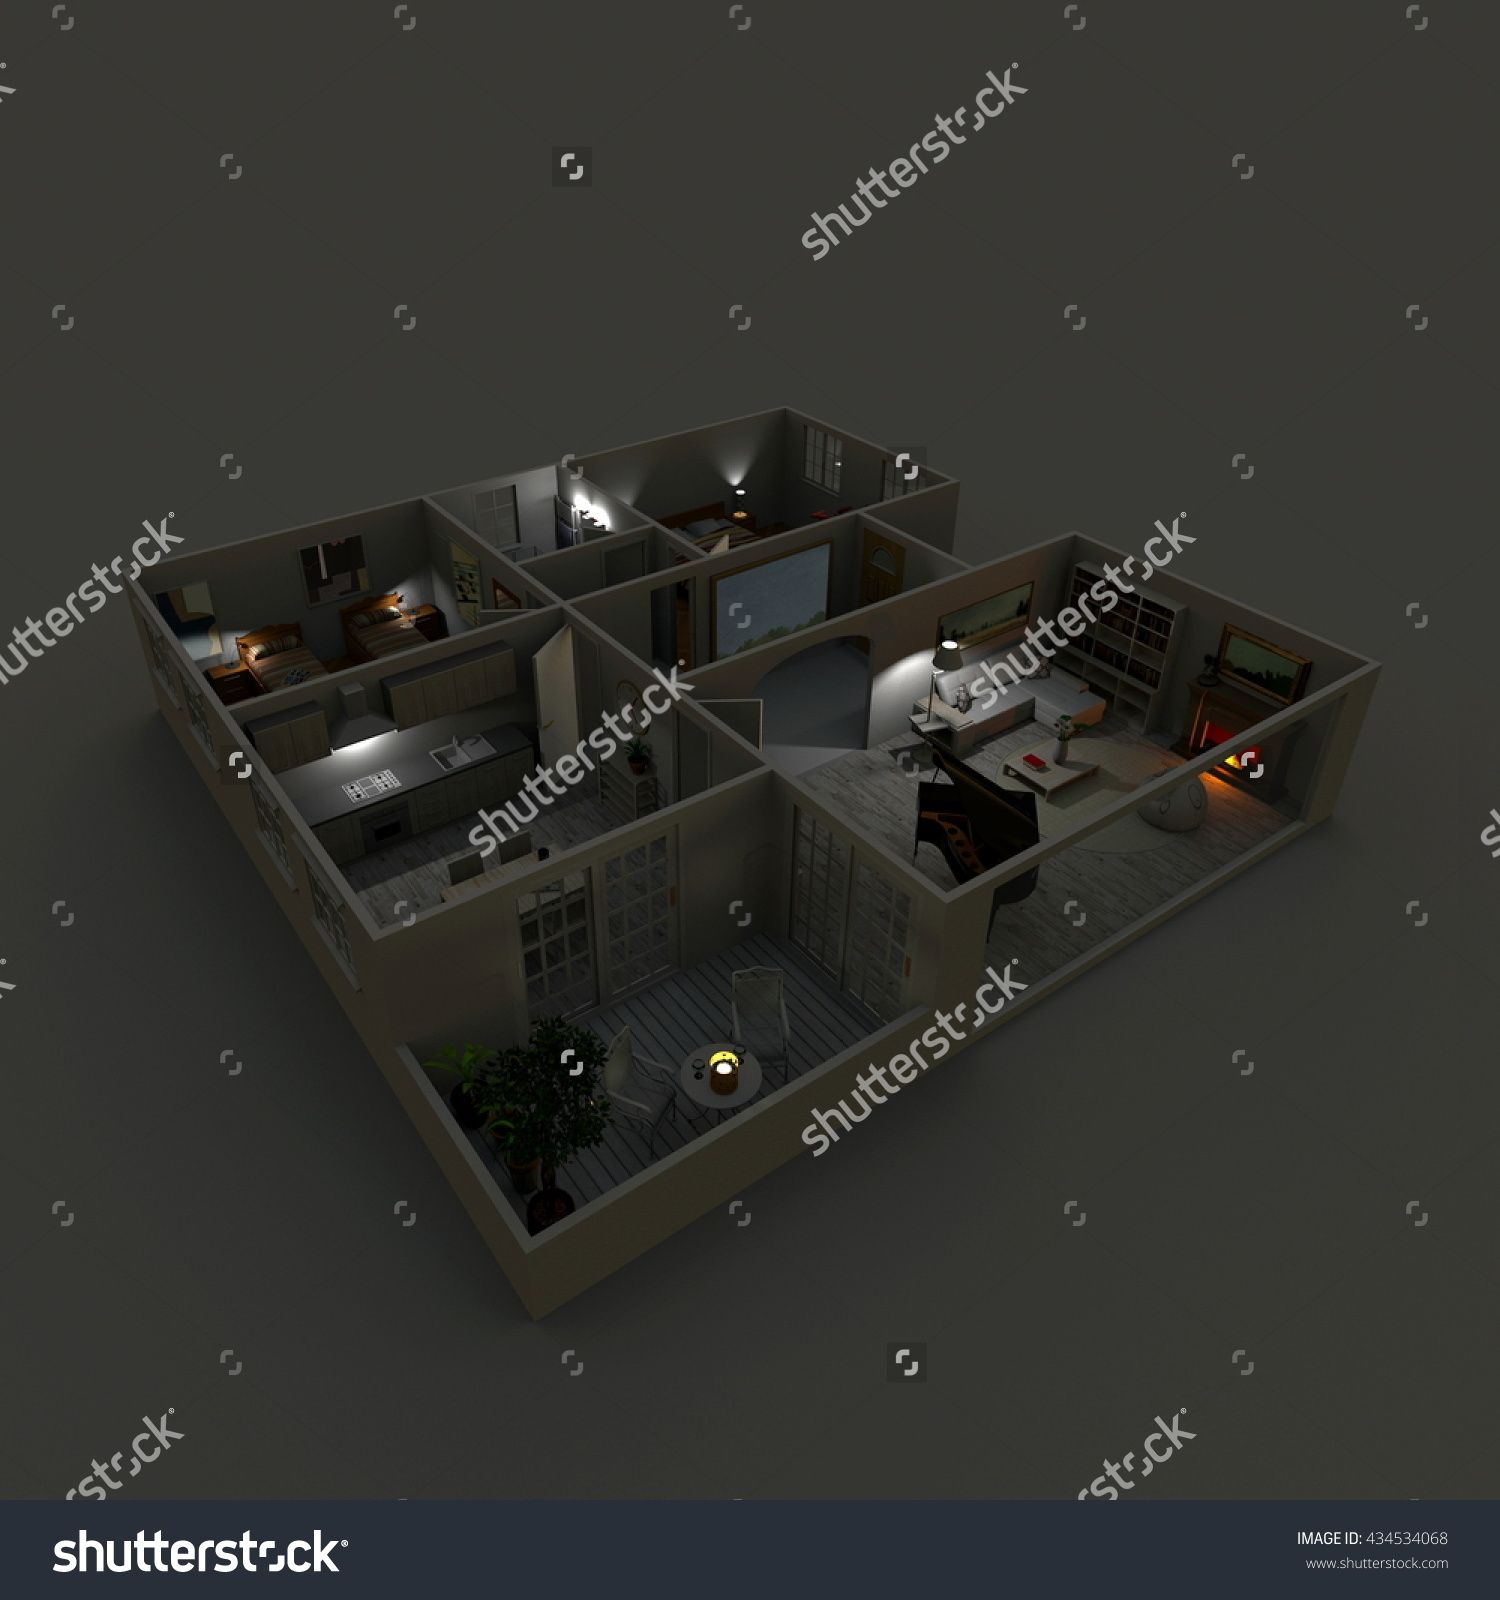 3d Interior Rendering Perspective View Of Furnished Home Apartment With Turned On Lights By Night Kitchen Living RoomsEntrance